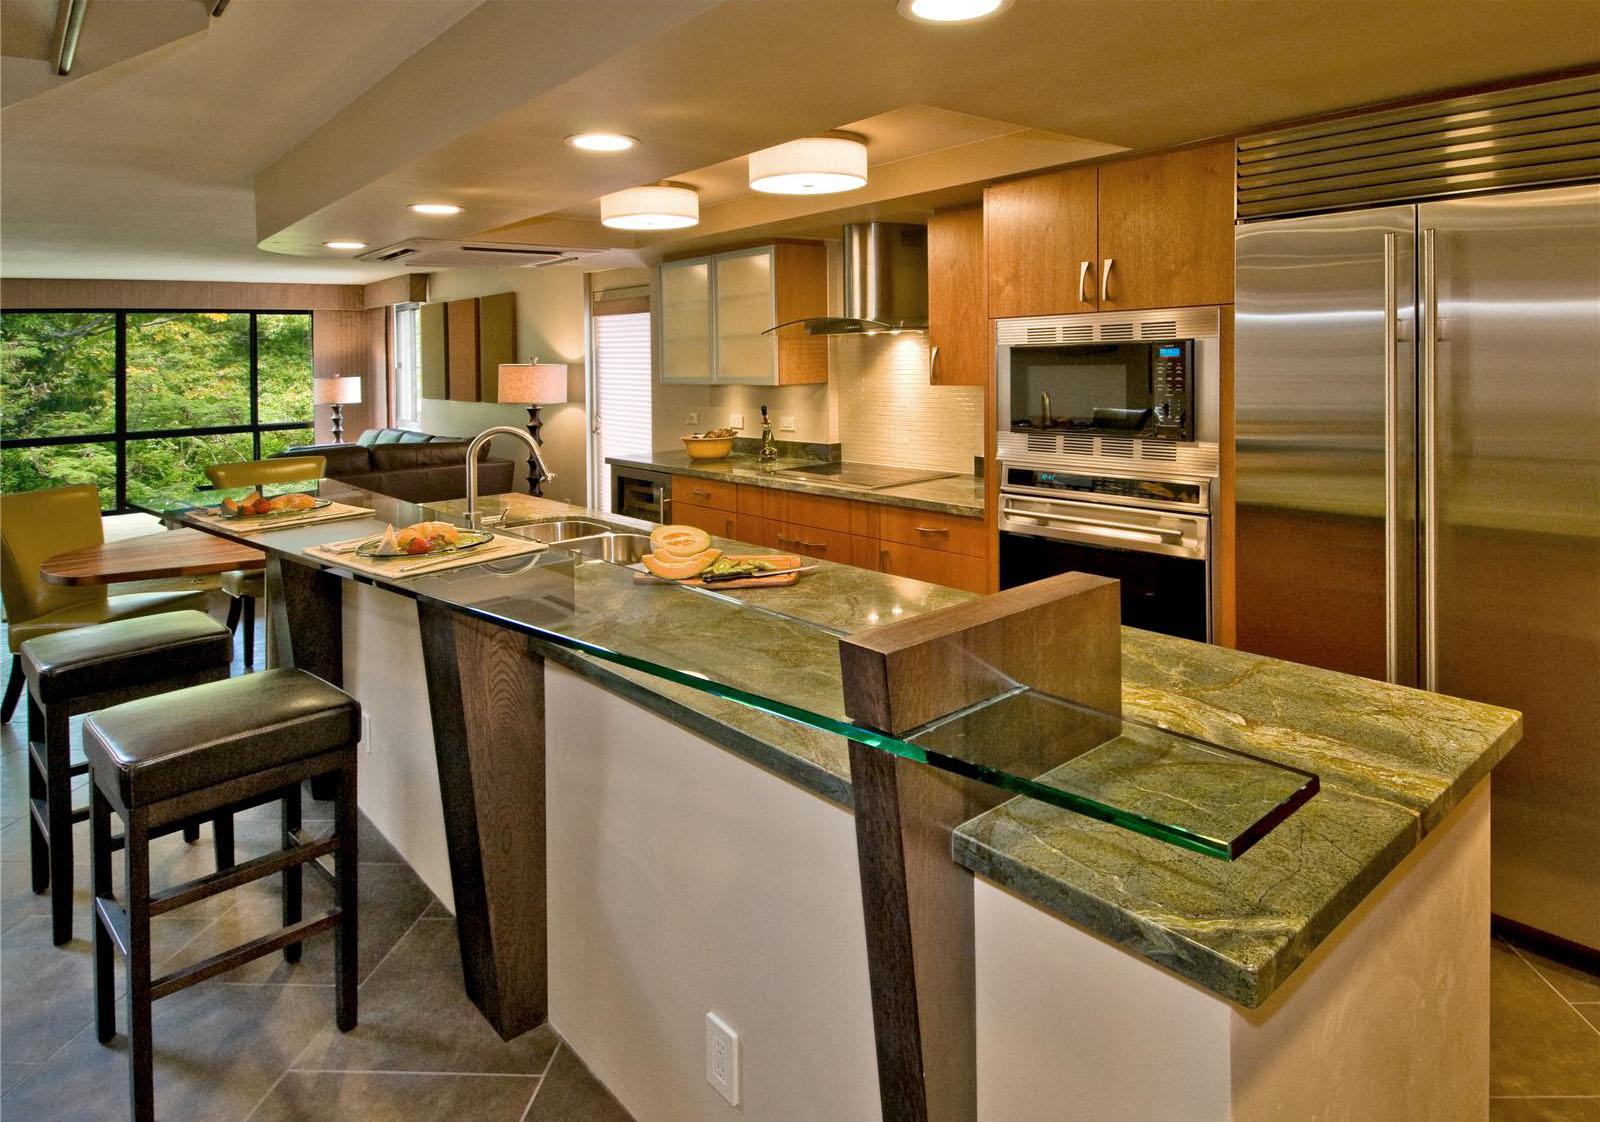 Creative Open Kitchen With Breakfast Counter Designs On